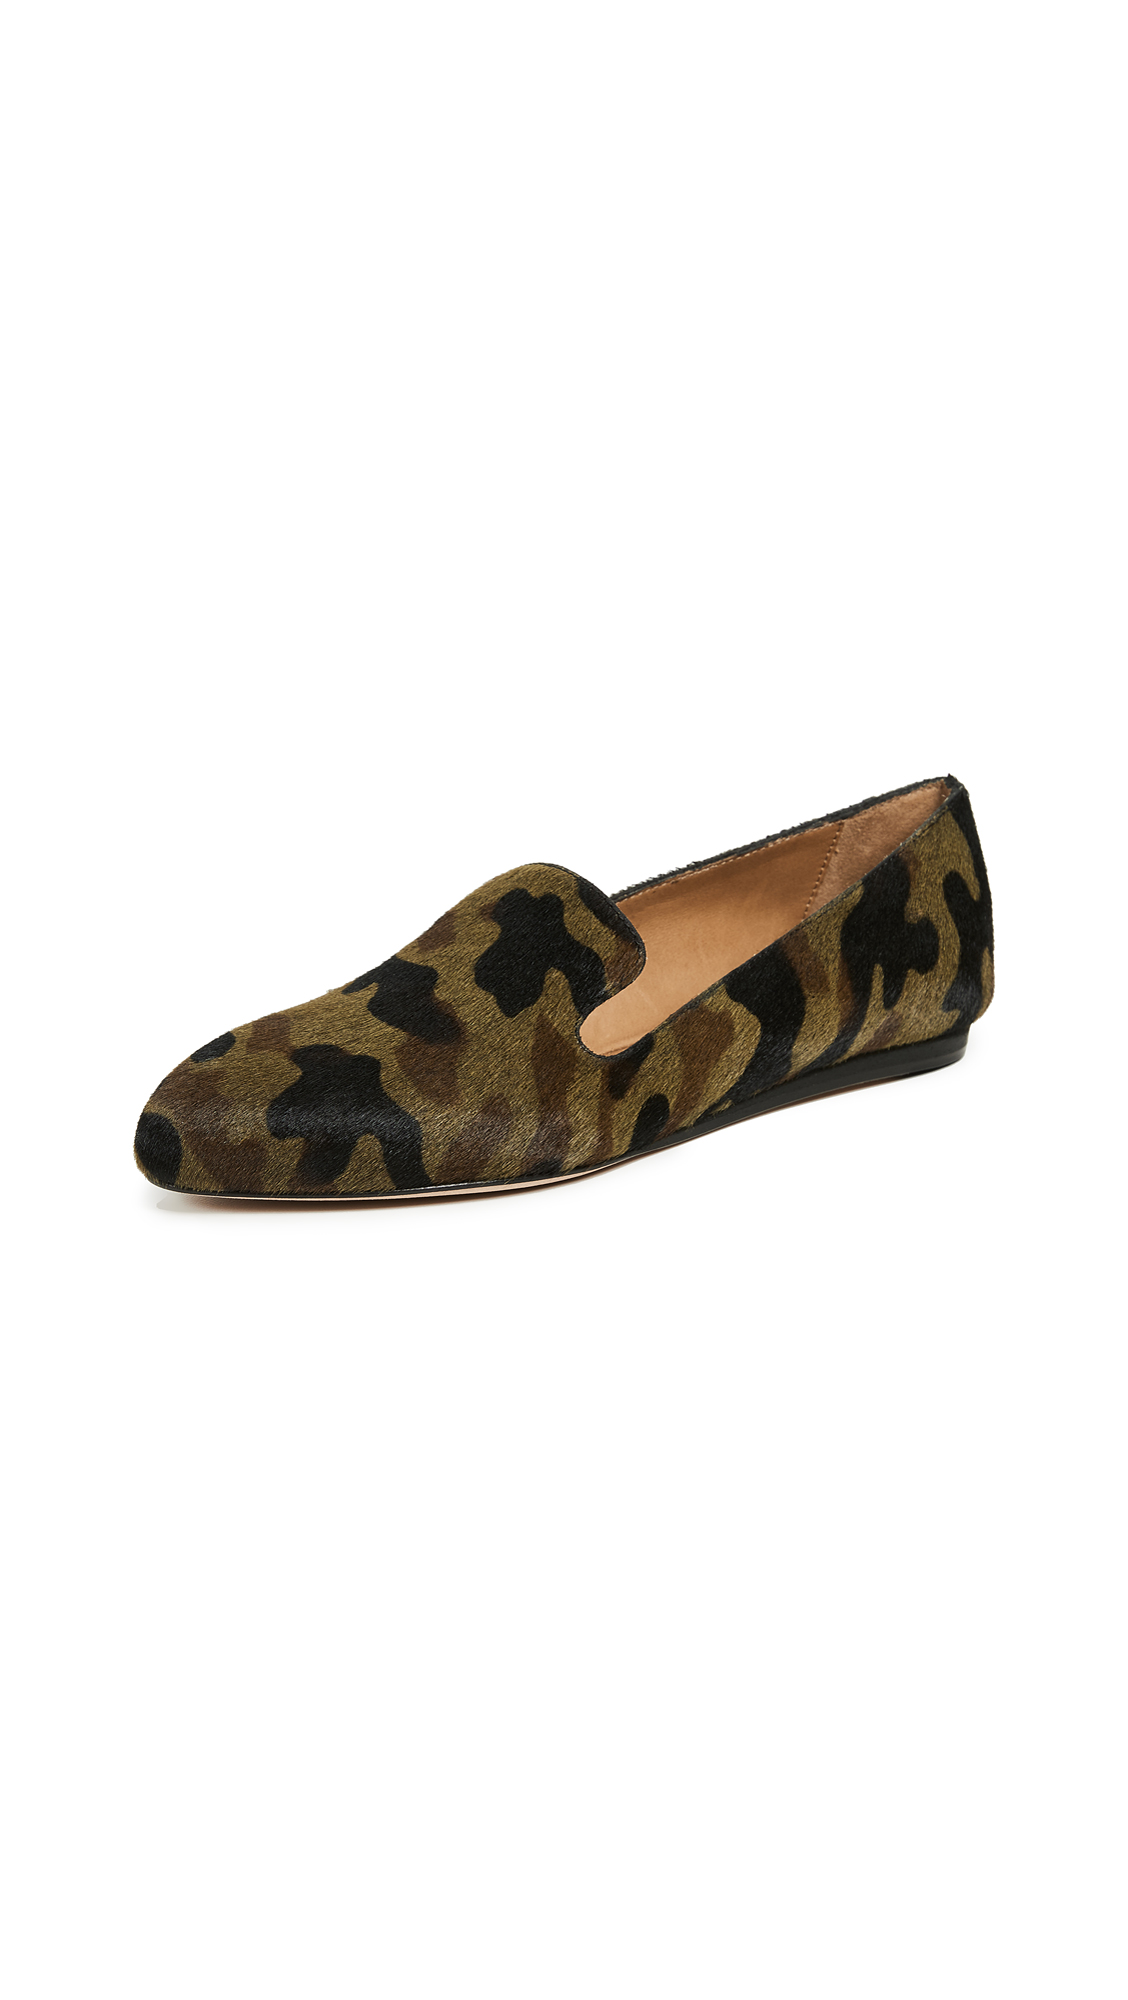 Veronica Beard Griffin Flats - Camo